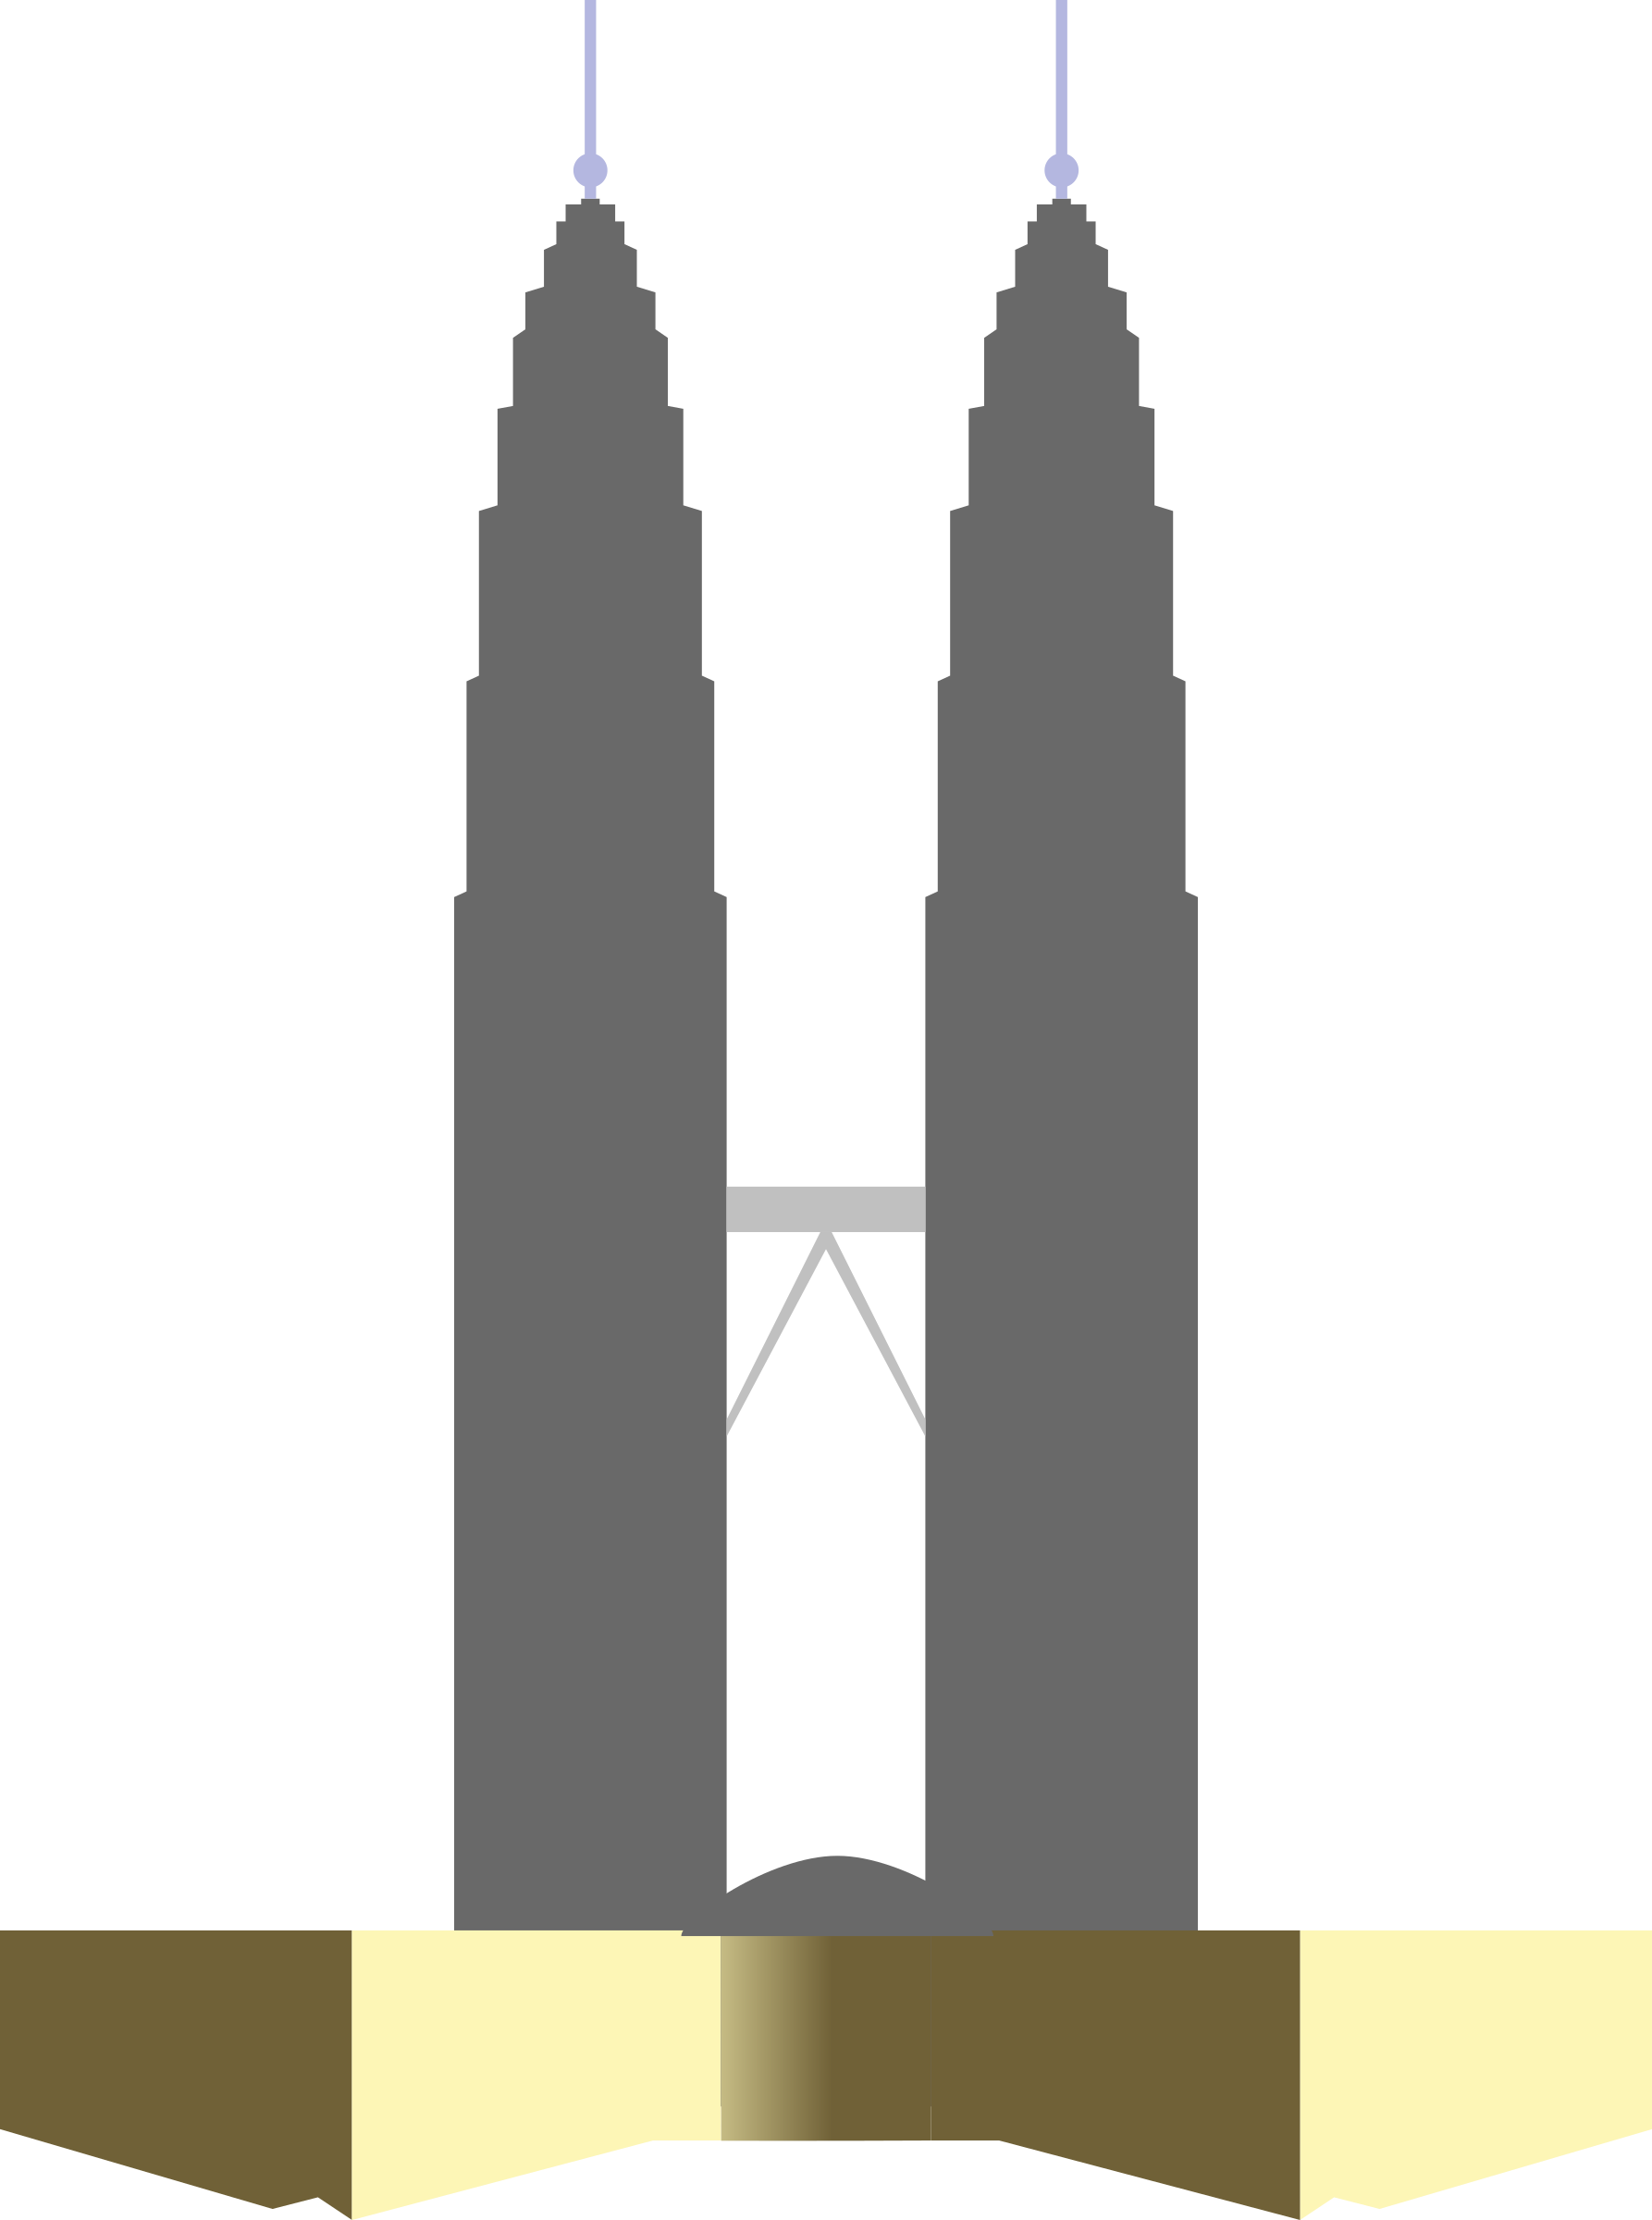 Twin drawing at getdrawings. Tower clipart silhouette